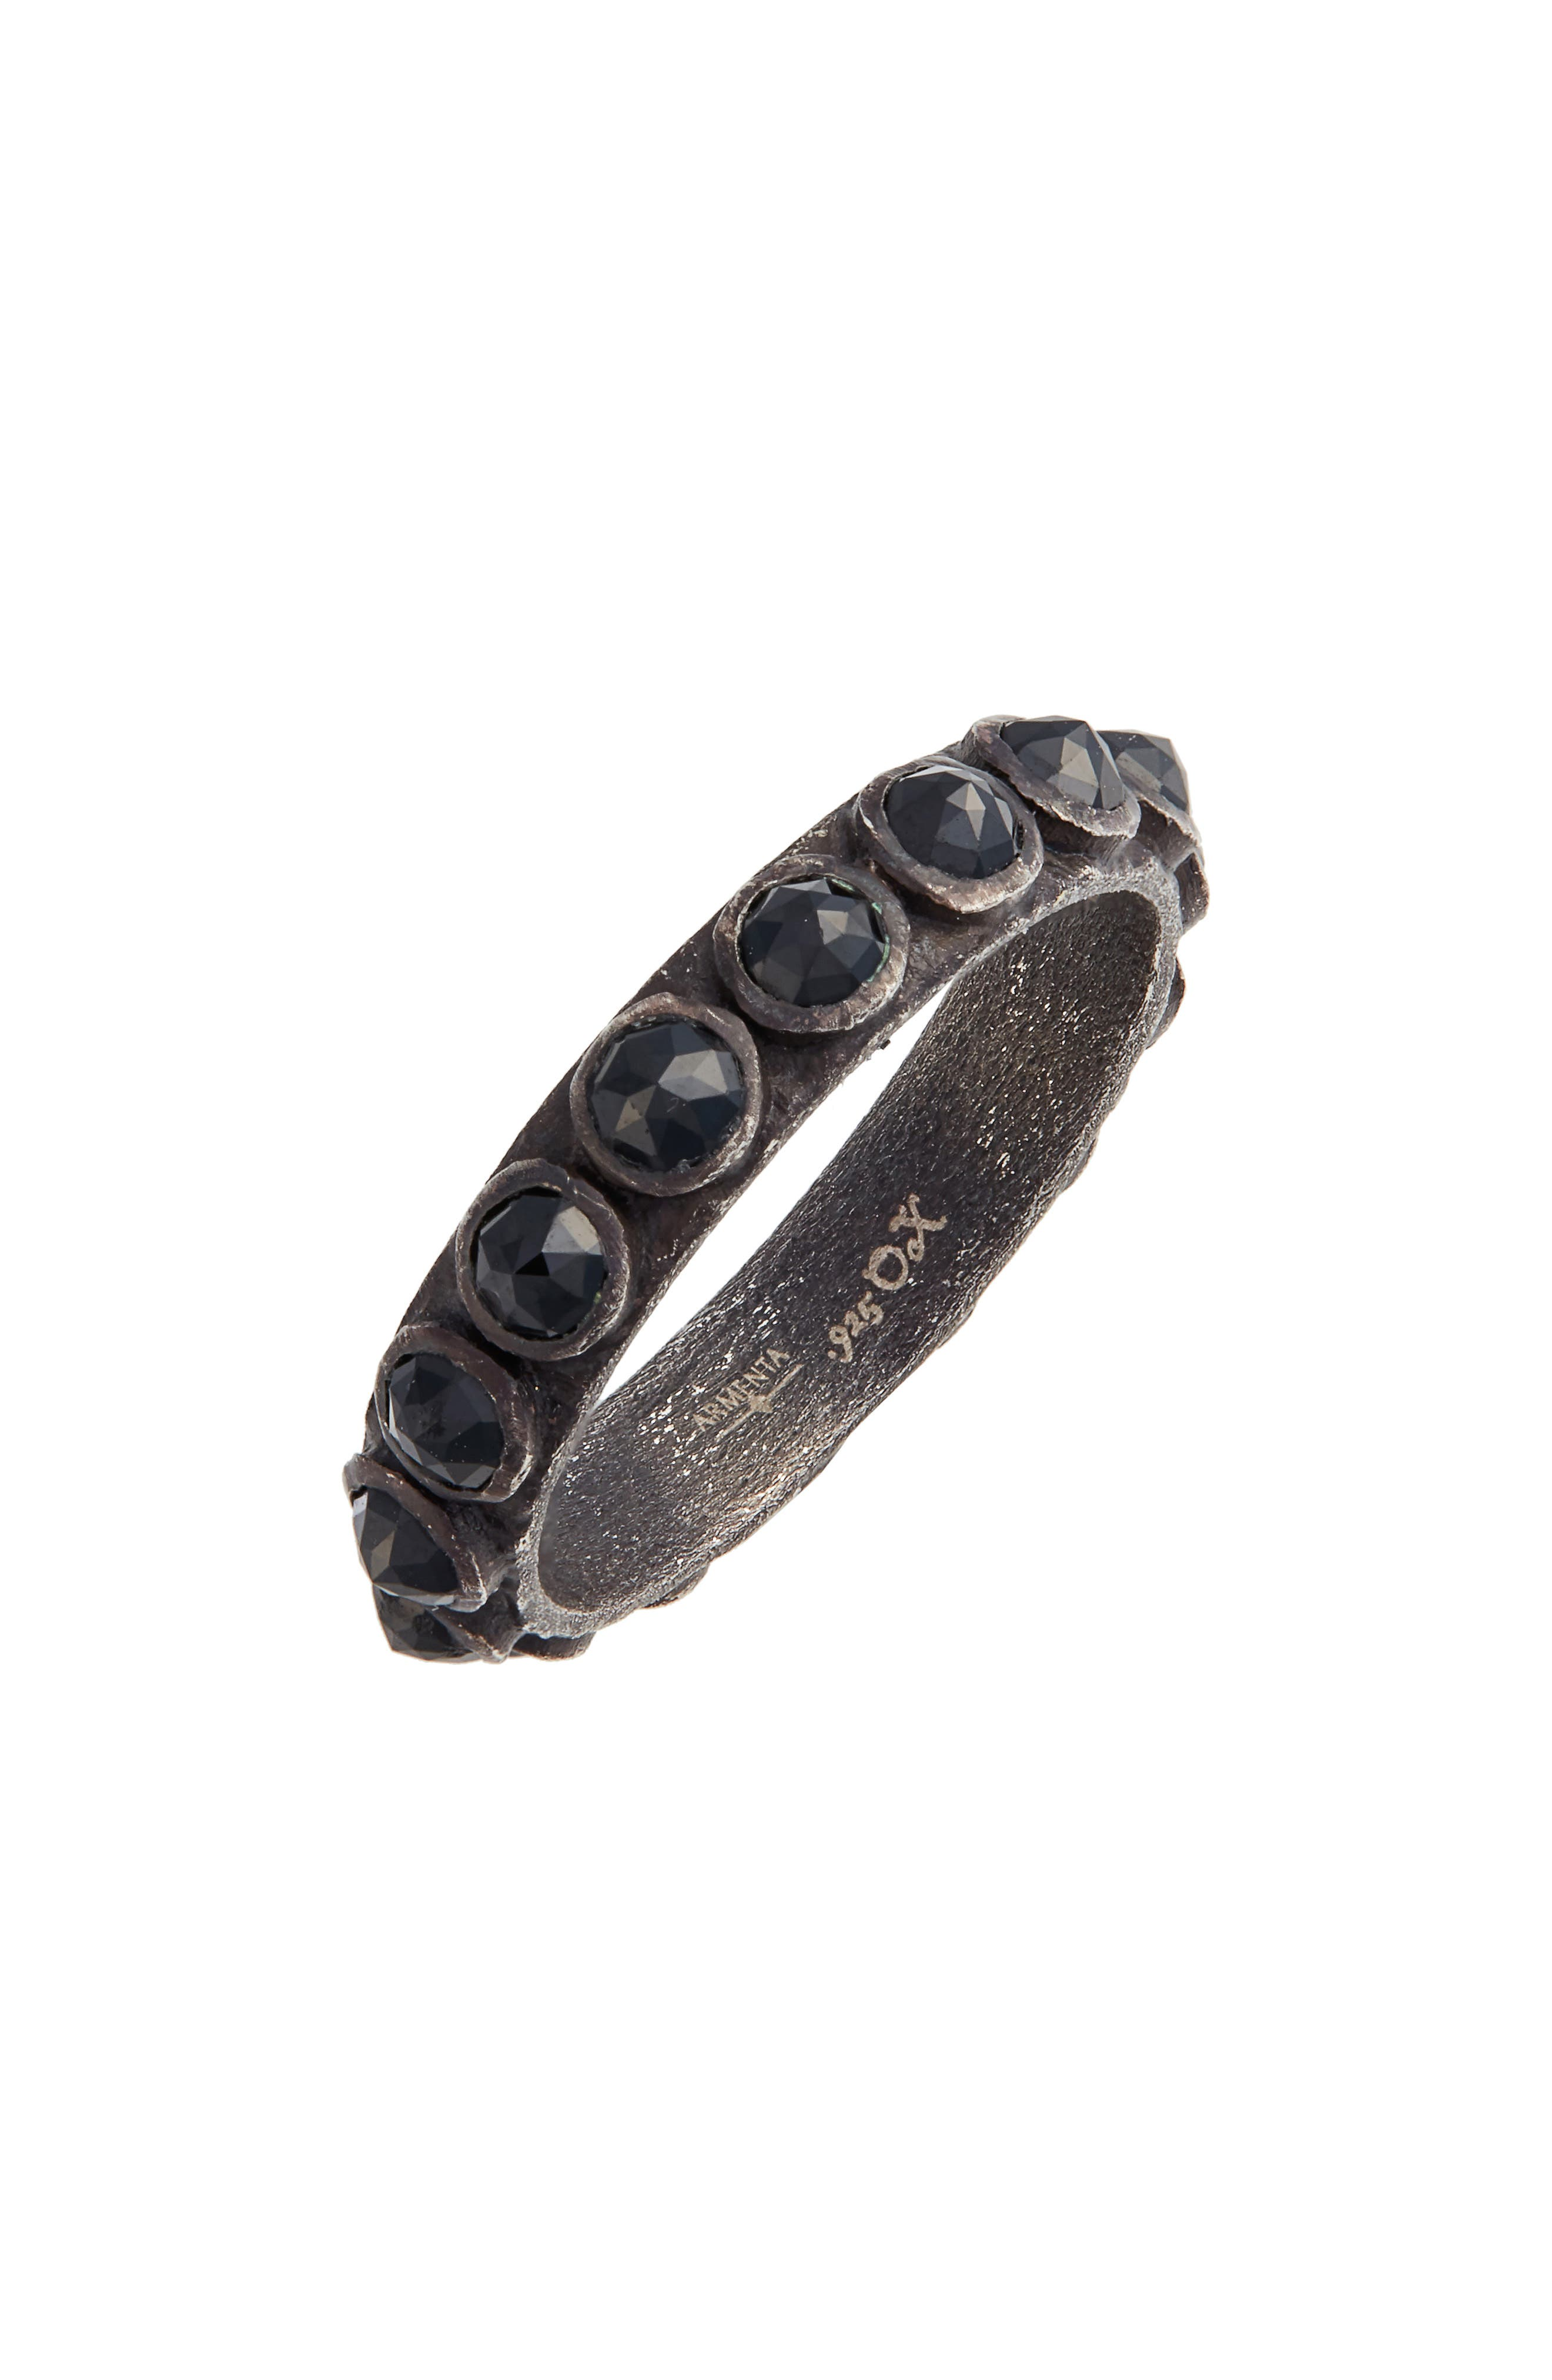 New World Black Spinel Sterling Silver Stackable Ring,                         Main,                         color, BLACKENED SILVER